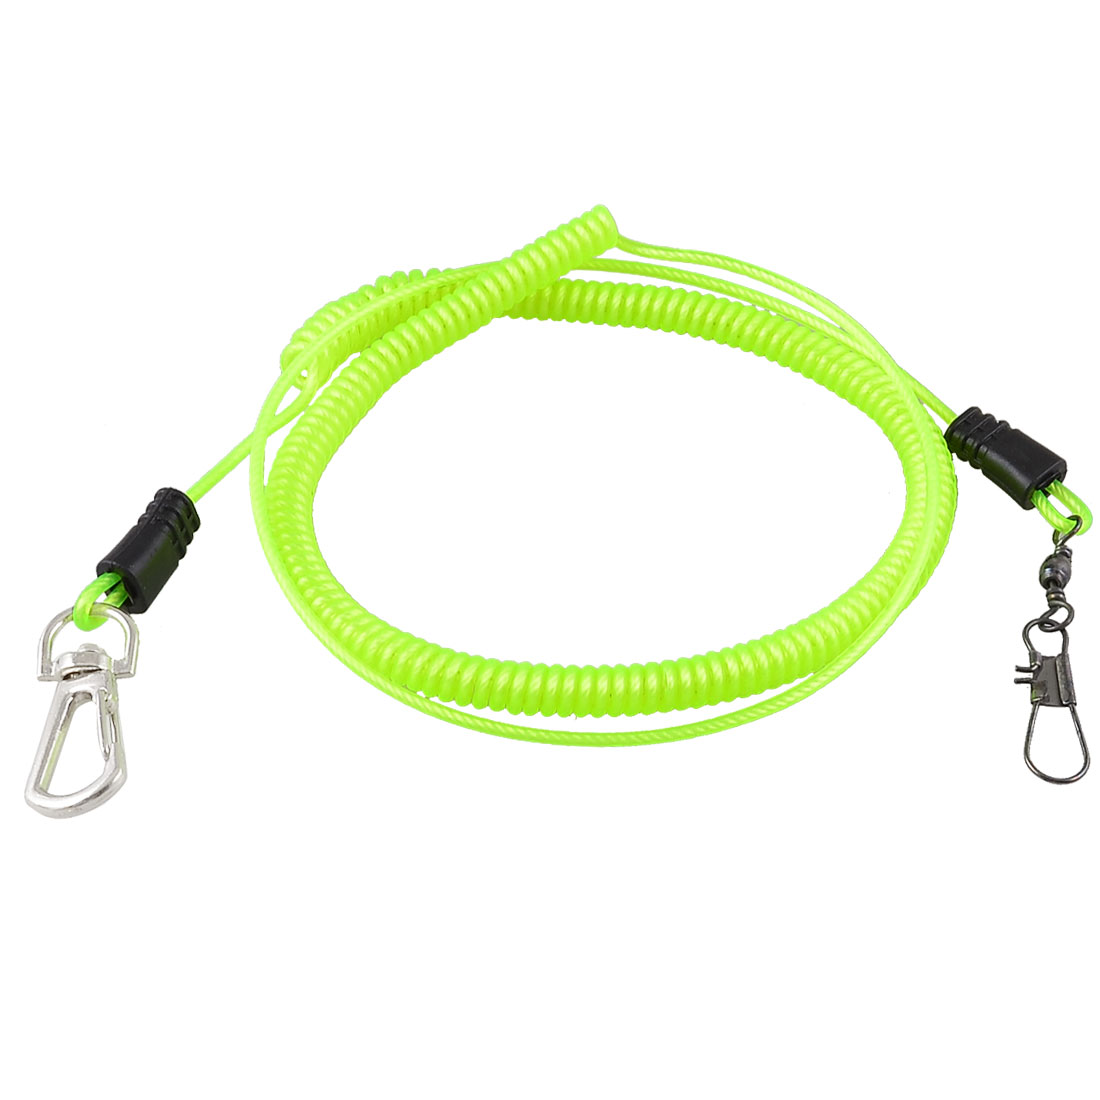 Yellow Green Retractable Plastic Coiled Fishing Lanyard Rope Cable 3 Meters